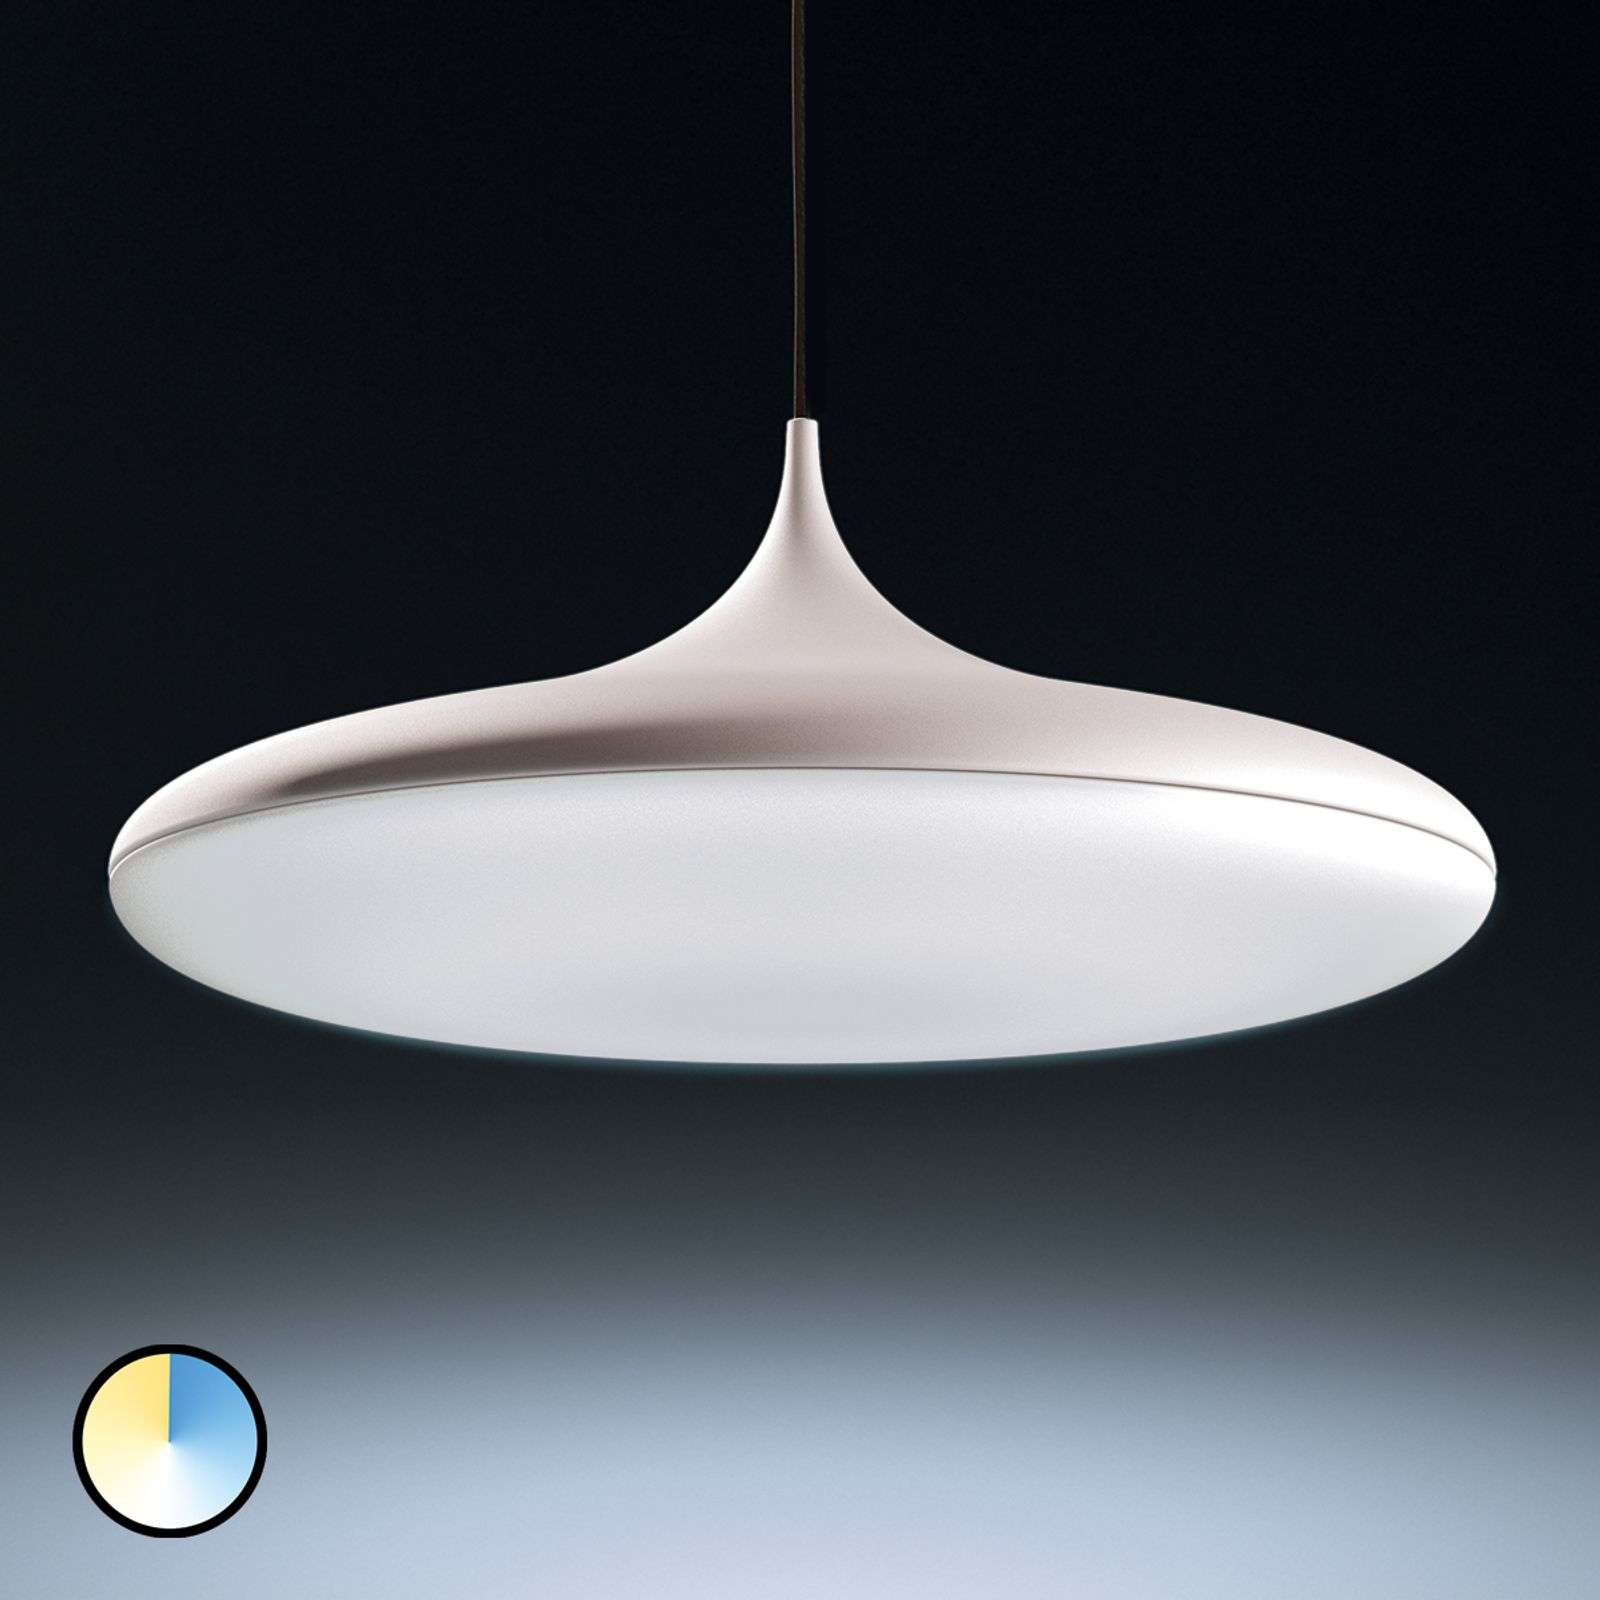 Philips Hue White Ambiance Cher suspension blanche